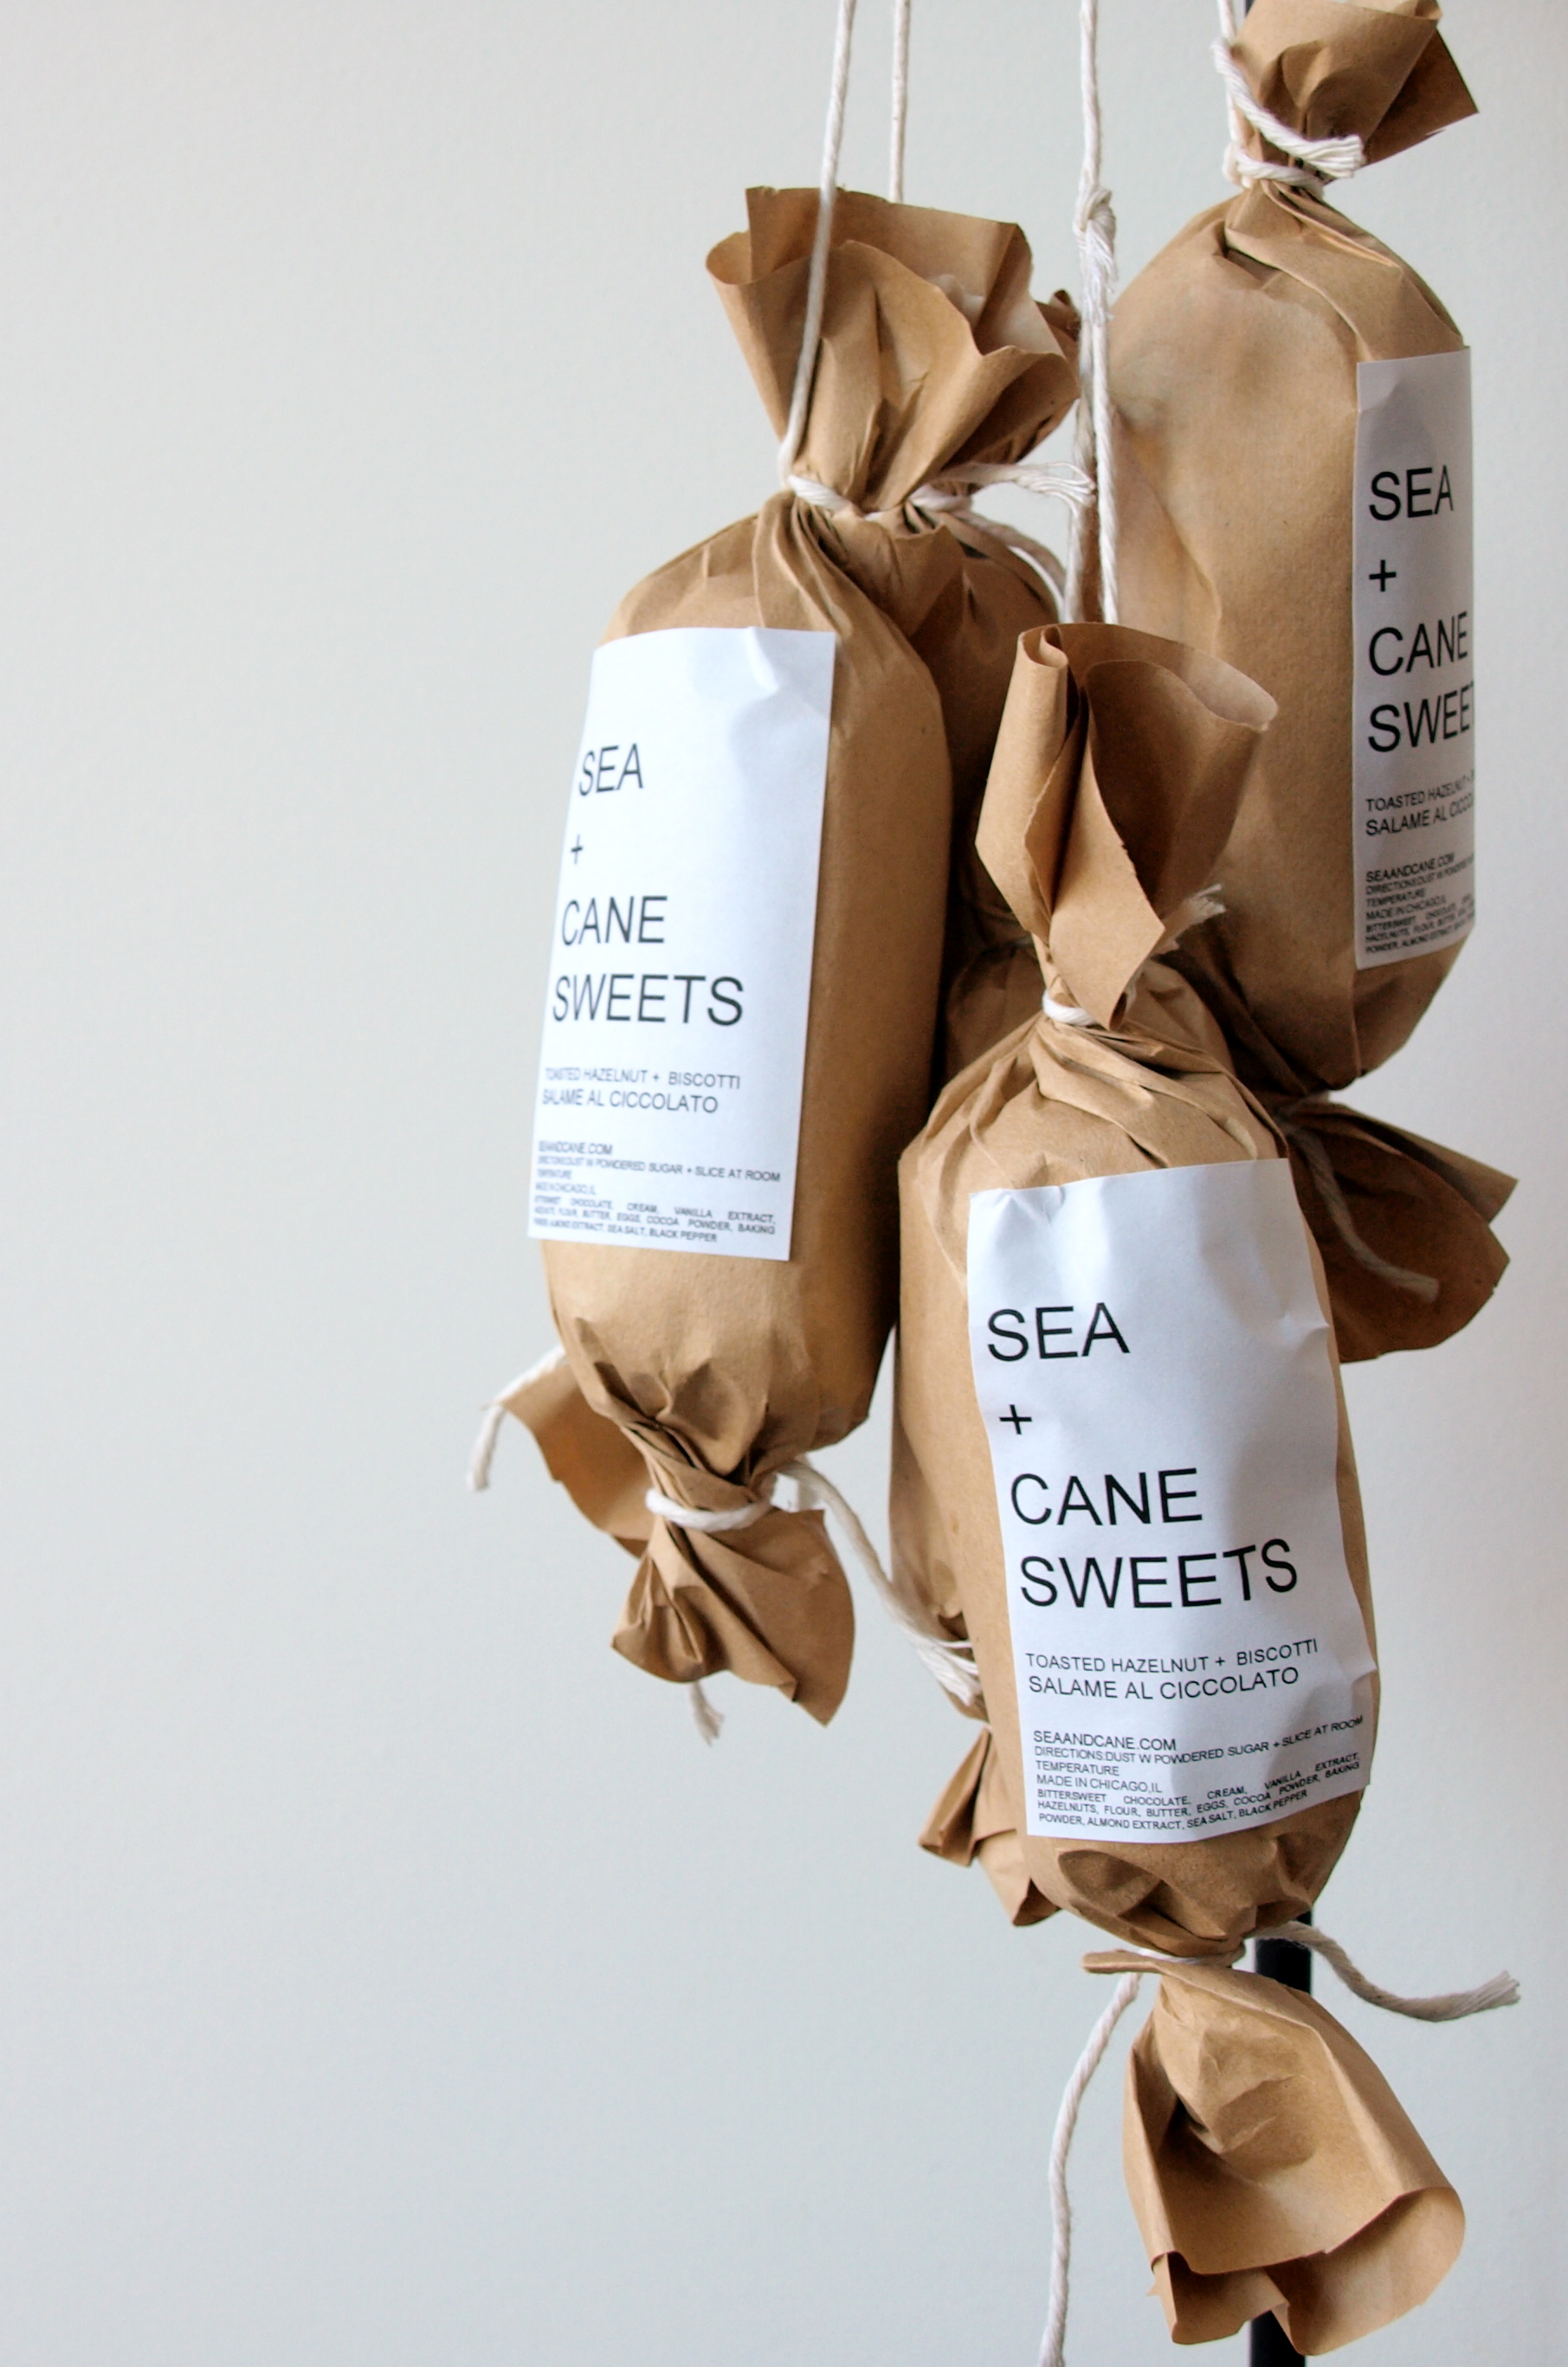 SALAME AL CIOCCOLATO package | Sea + Cane Sweets #packaging ...